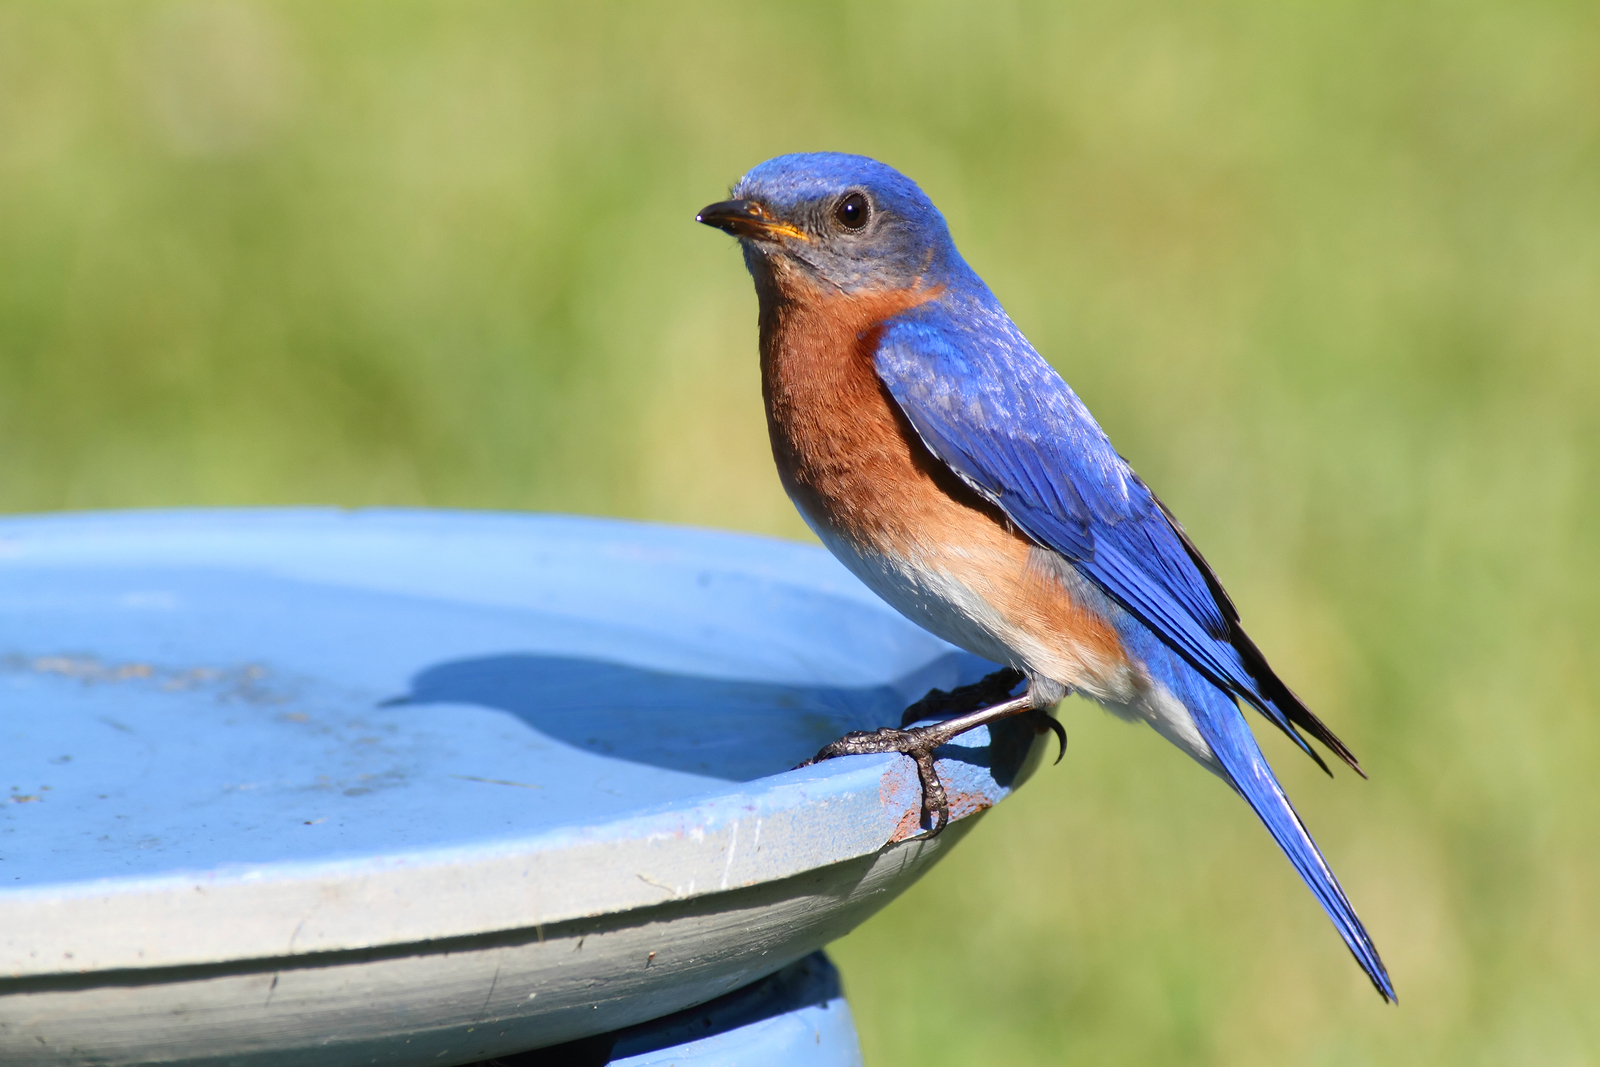 Eastern Bluebird (Sialia sialis) in a bird bath